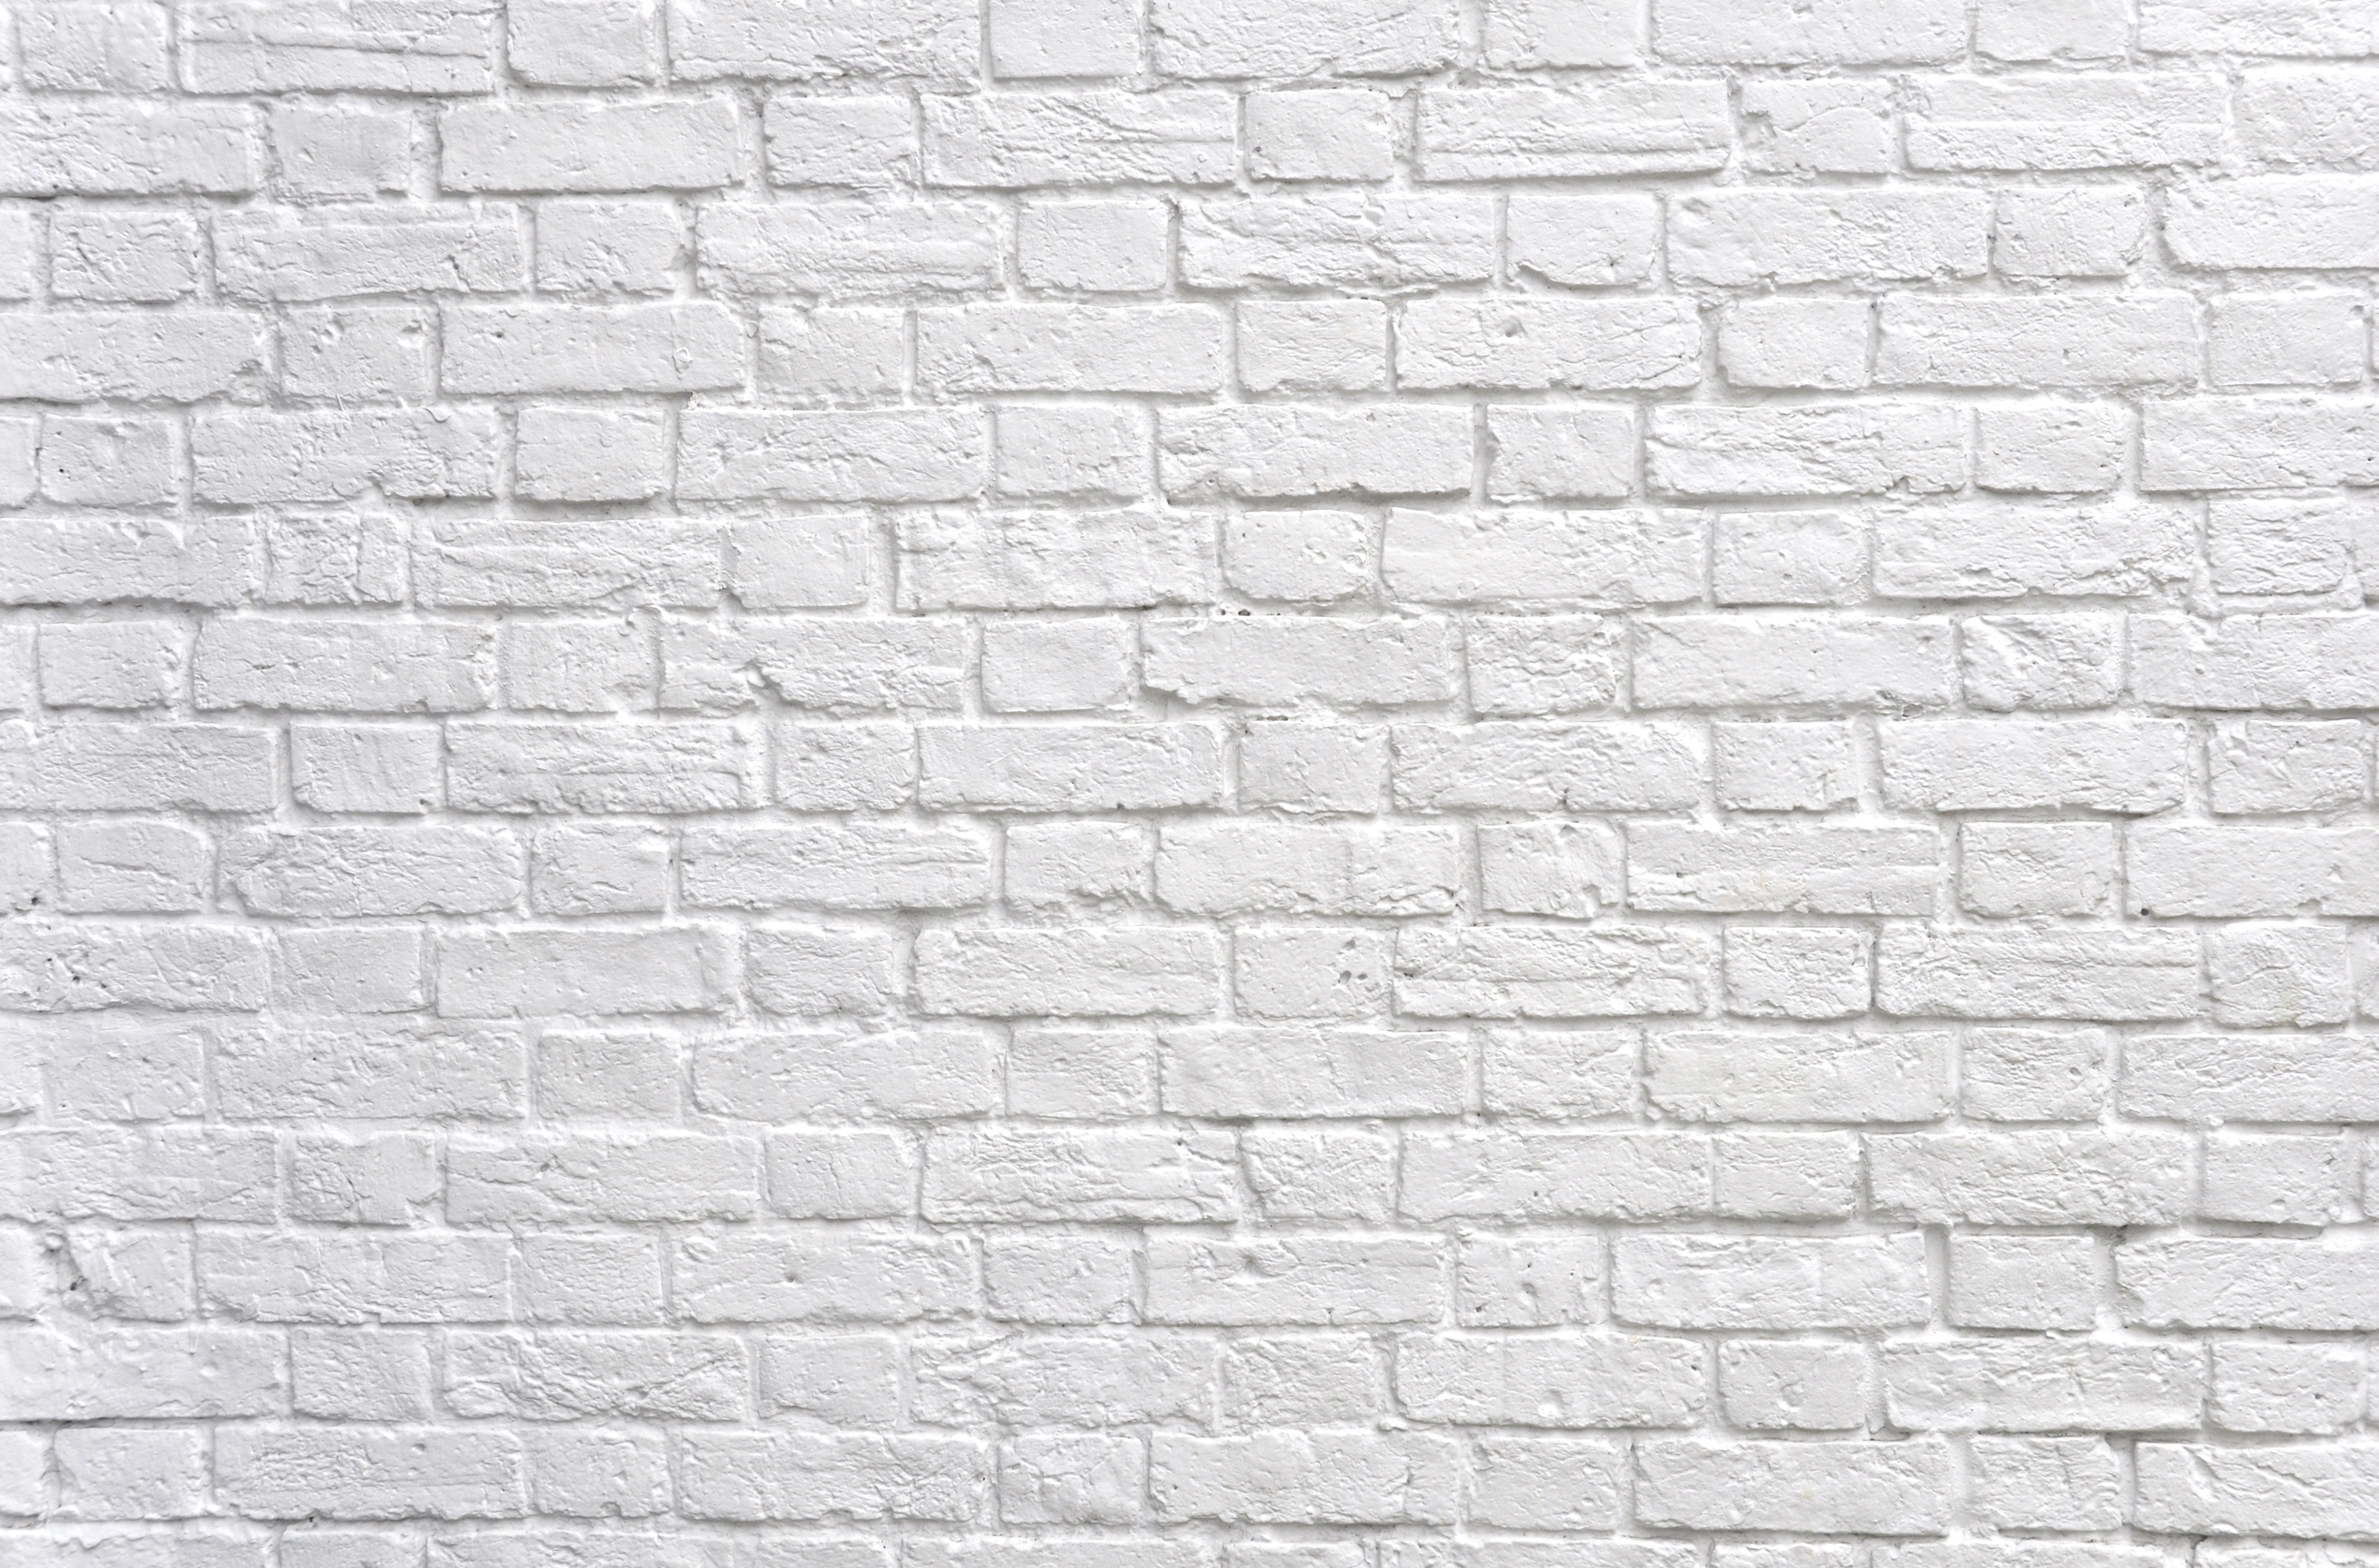 Black And White Brick Wall Background White Brick Wall Image Decoration Picture White Brick Wall On Edge Studio